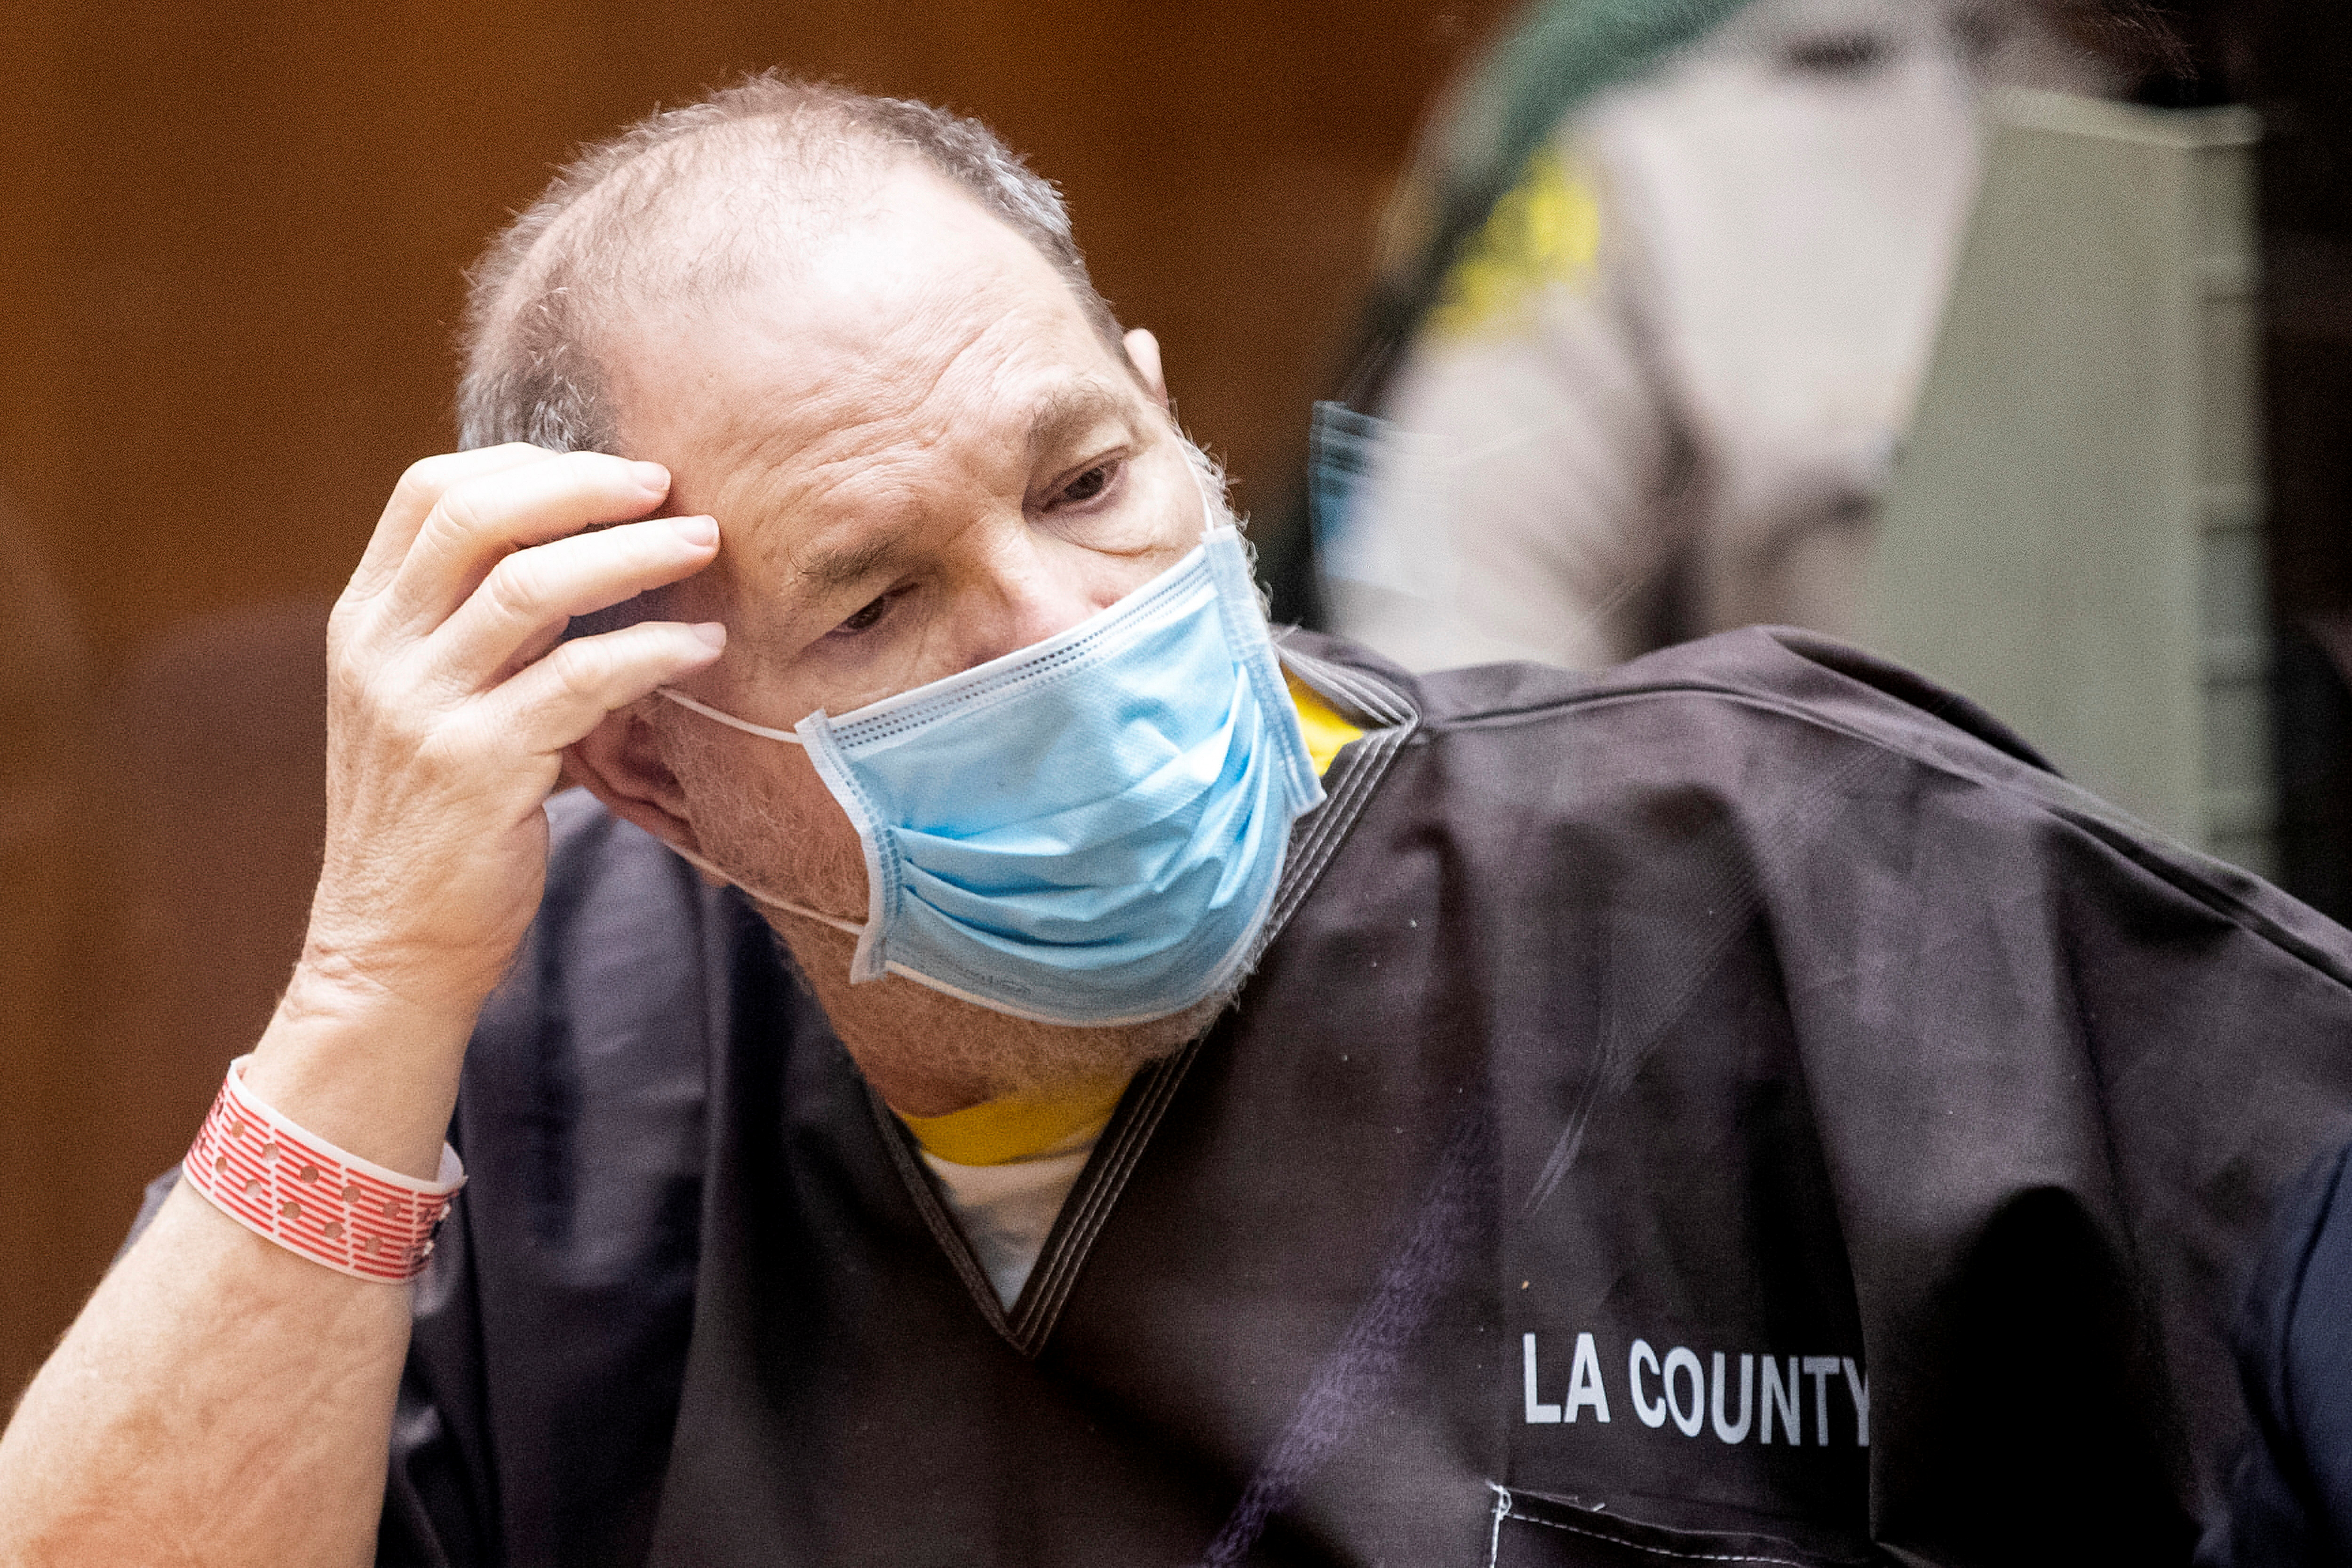 Harvey Weinstein, who was extradited from New York to Los Angeles to face sex-related charges, listens in court during a pre-trial hearing, in Los Angeles, California, U.S., July 29, 2021. Etienne Laurent/Pool via REUTERS